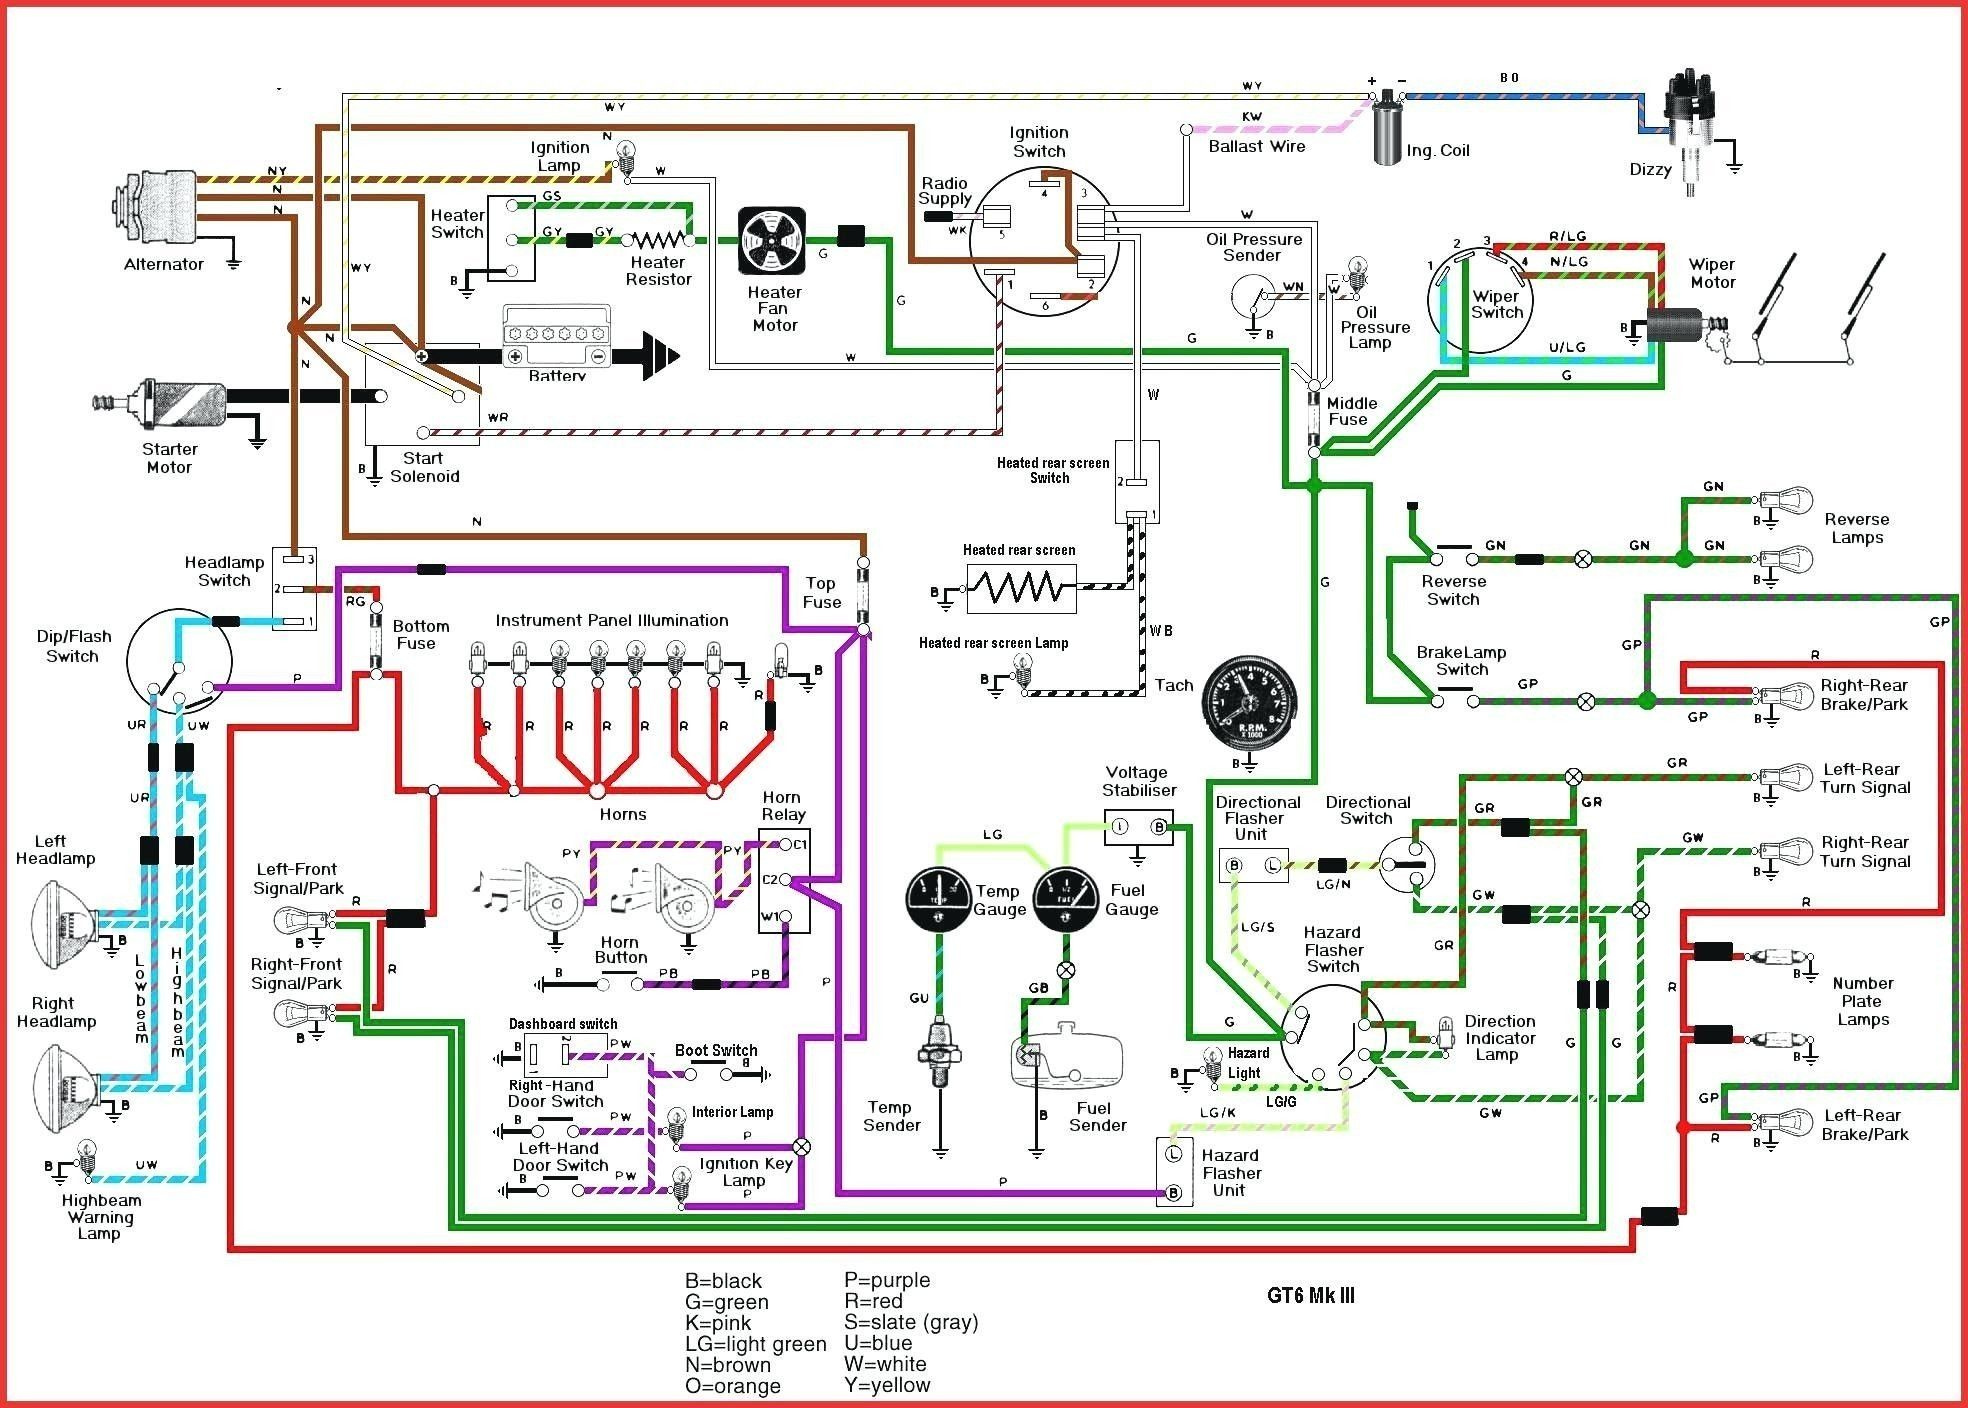 [WQZT_9871]  D3FFE Triumph 650 Simple Wiring Diagram | Digital Resources | Triumph 650 Wiring Diagram |  | Digital Resources